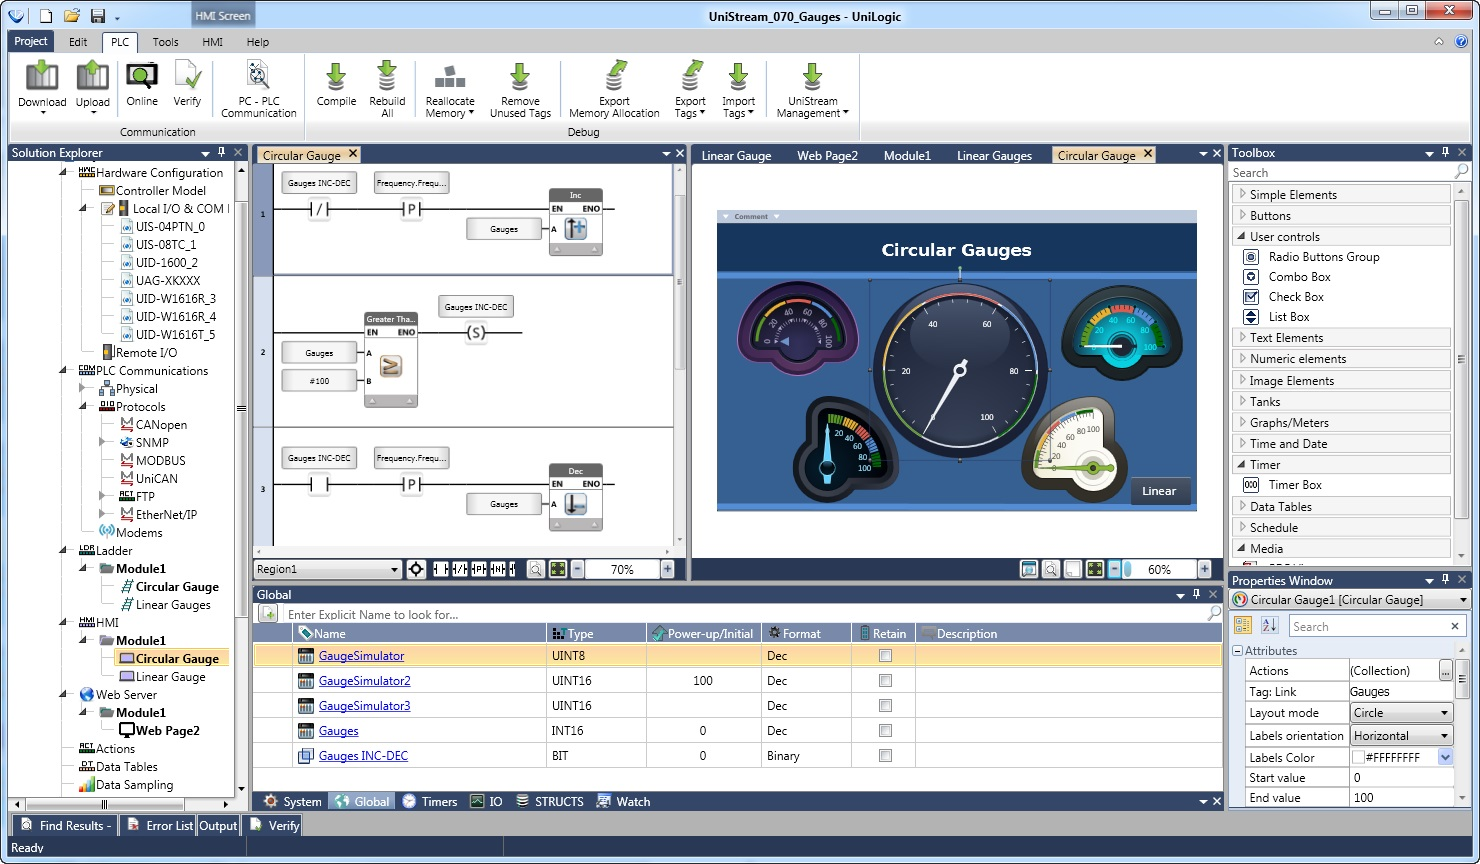 Unilogic HMI Programming screenshot